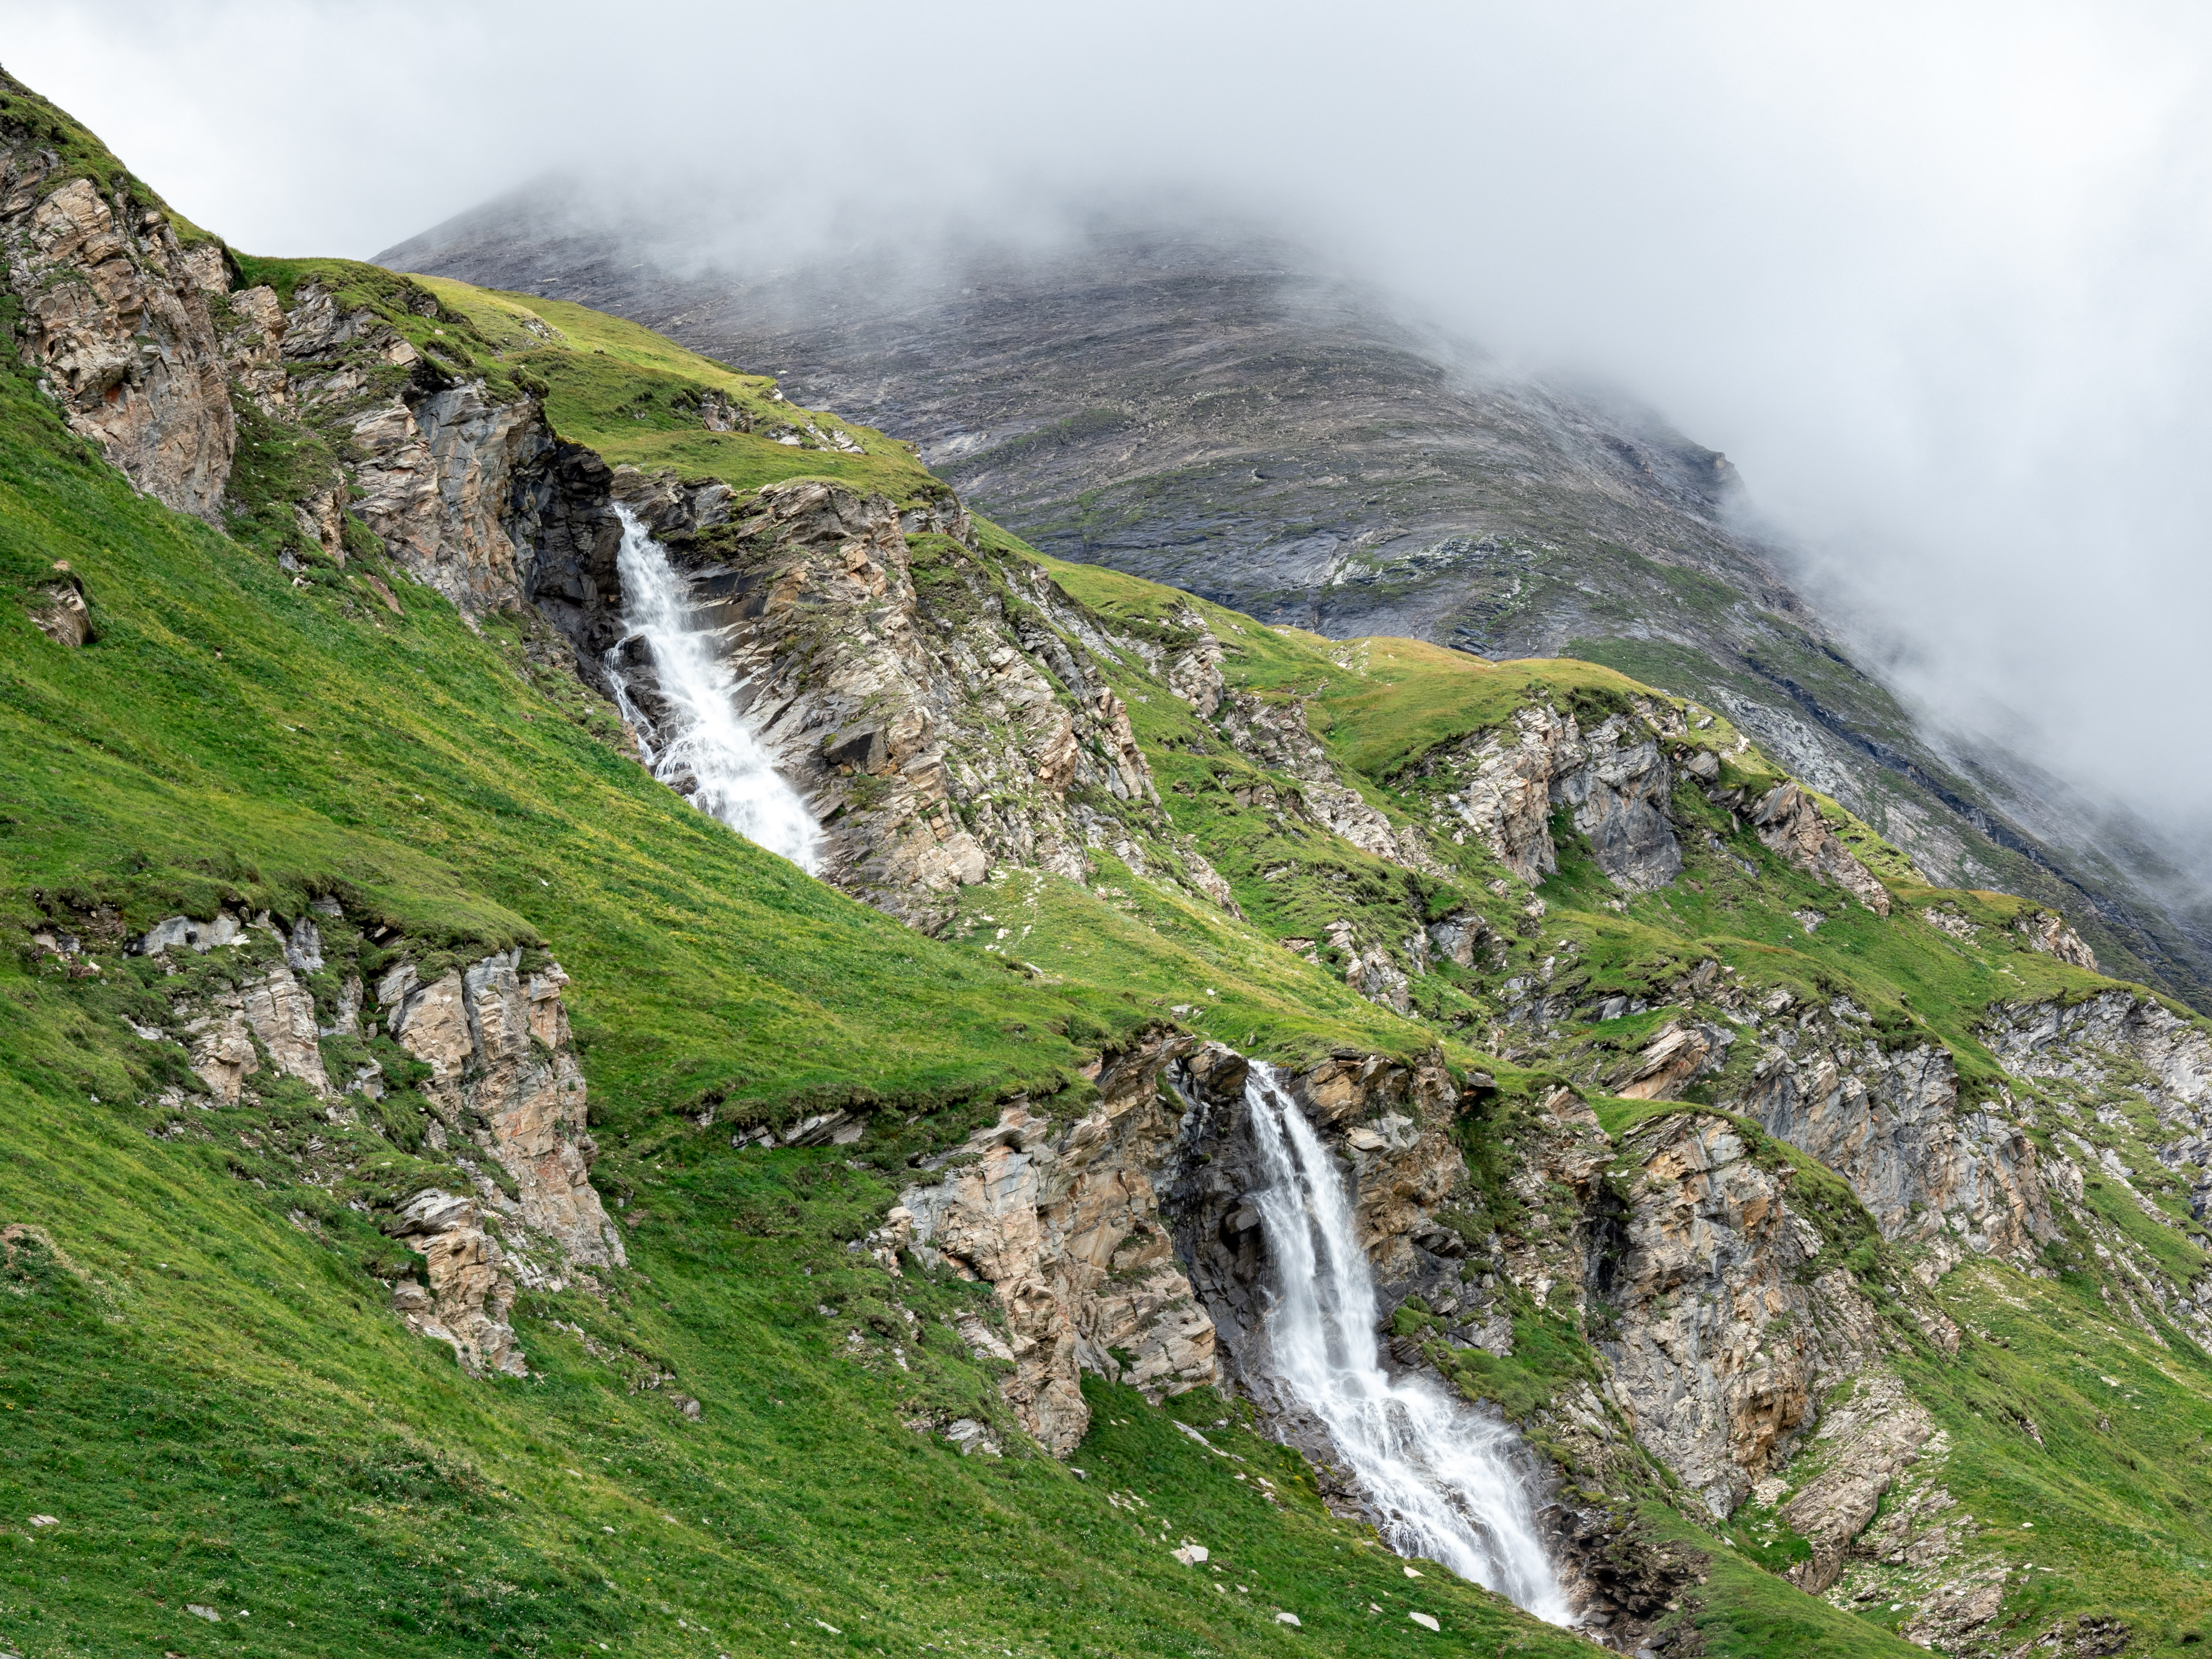 Hohe Tauern National Park, Austria, National Parks to Visit in Europe